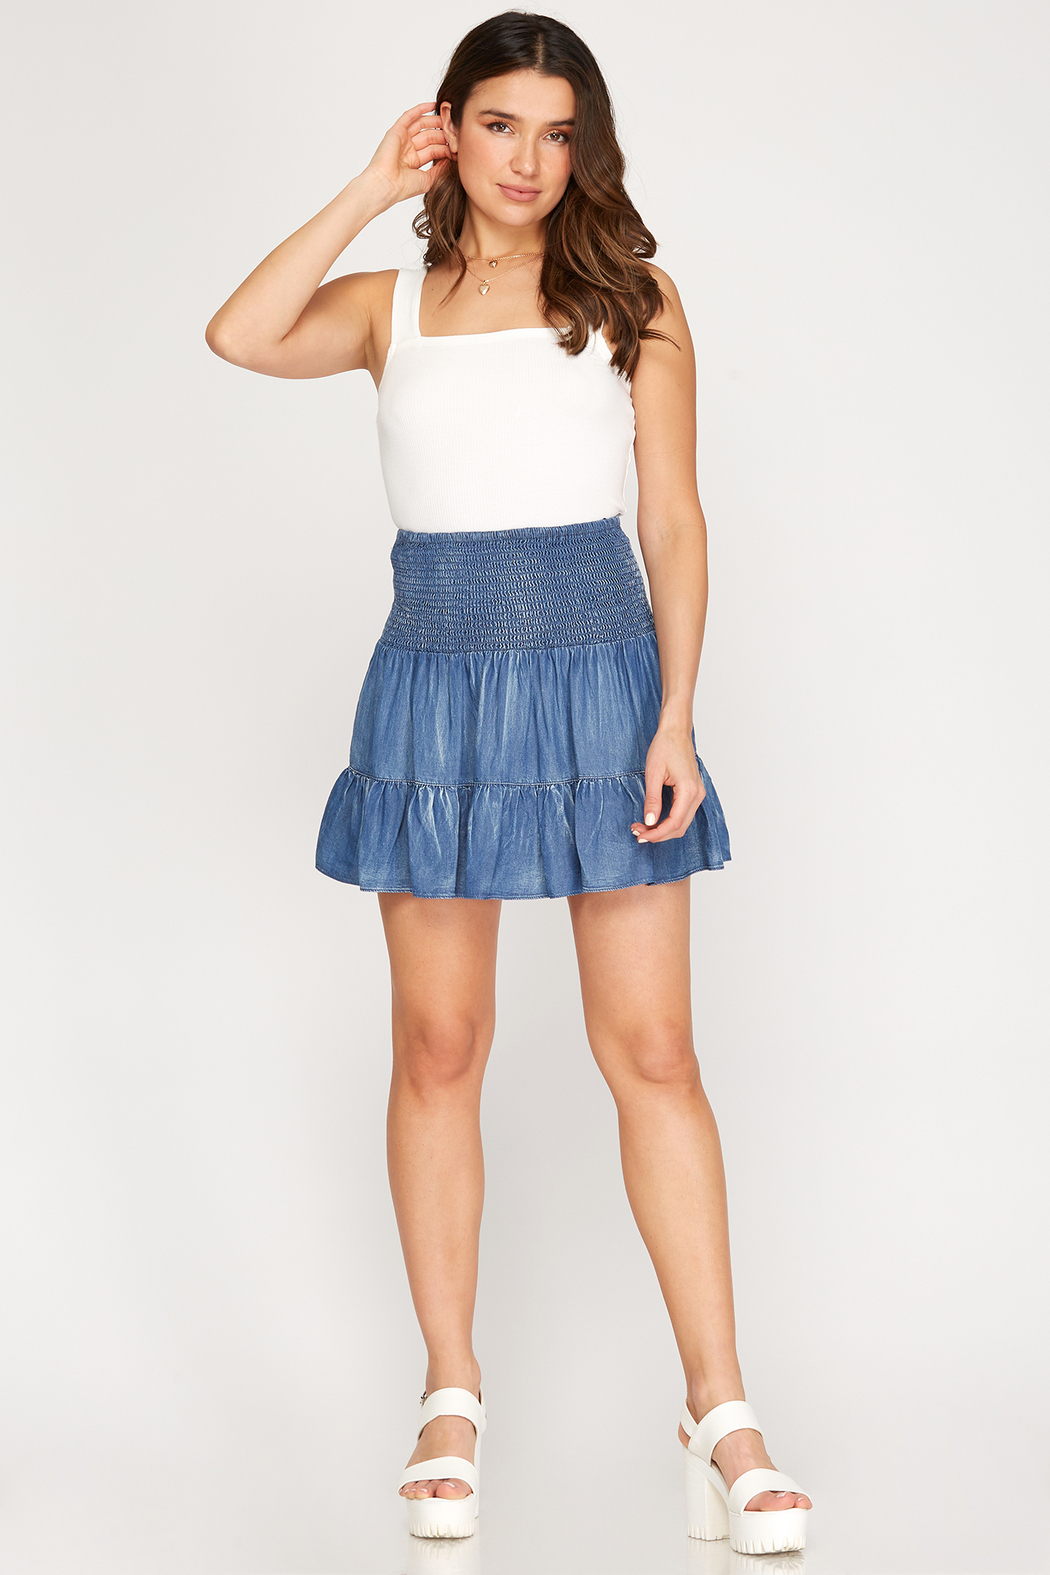 She & Sky  Tiered Chambray Smocked Skirt - Back Cropped Image